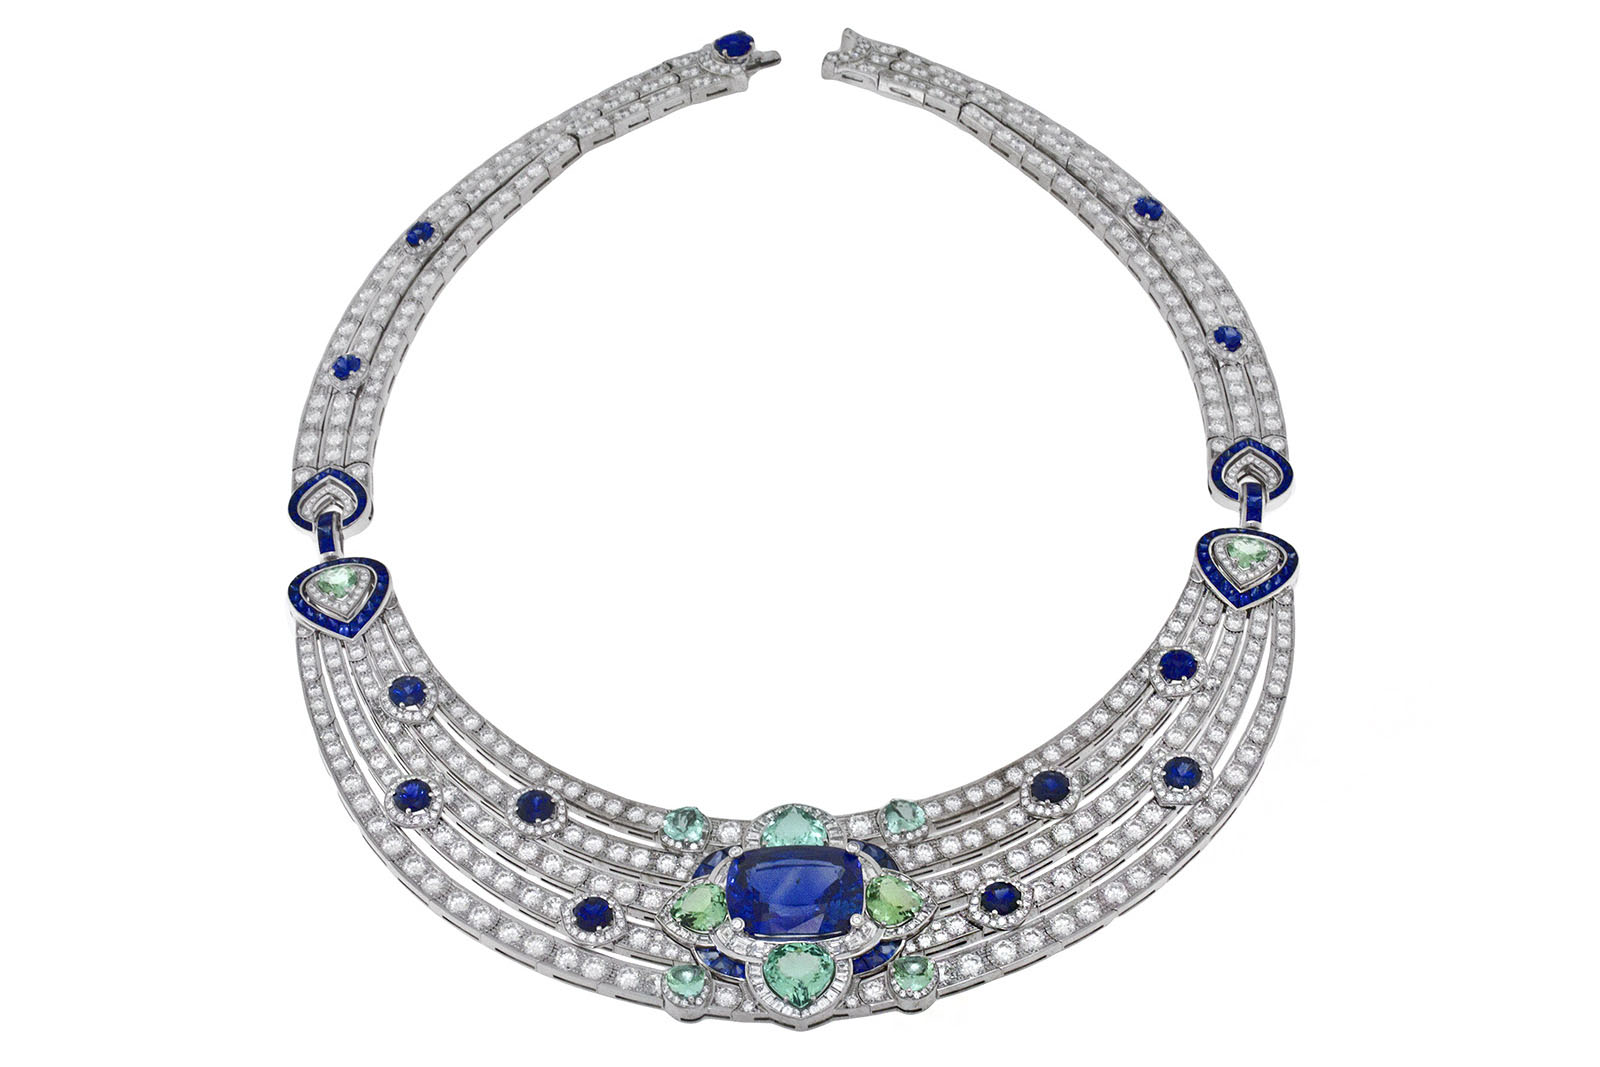 Bvlgari 'Queen of Pop' necklace from 'Roaring 80s' line with 24.82ct cushion cut Sri Lankan sapphire, sapphires, tourmalines and diamonds